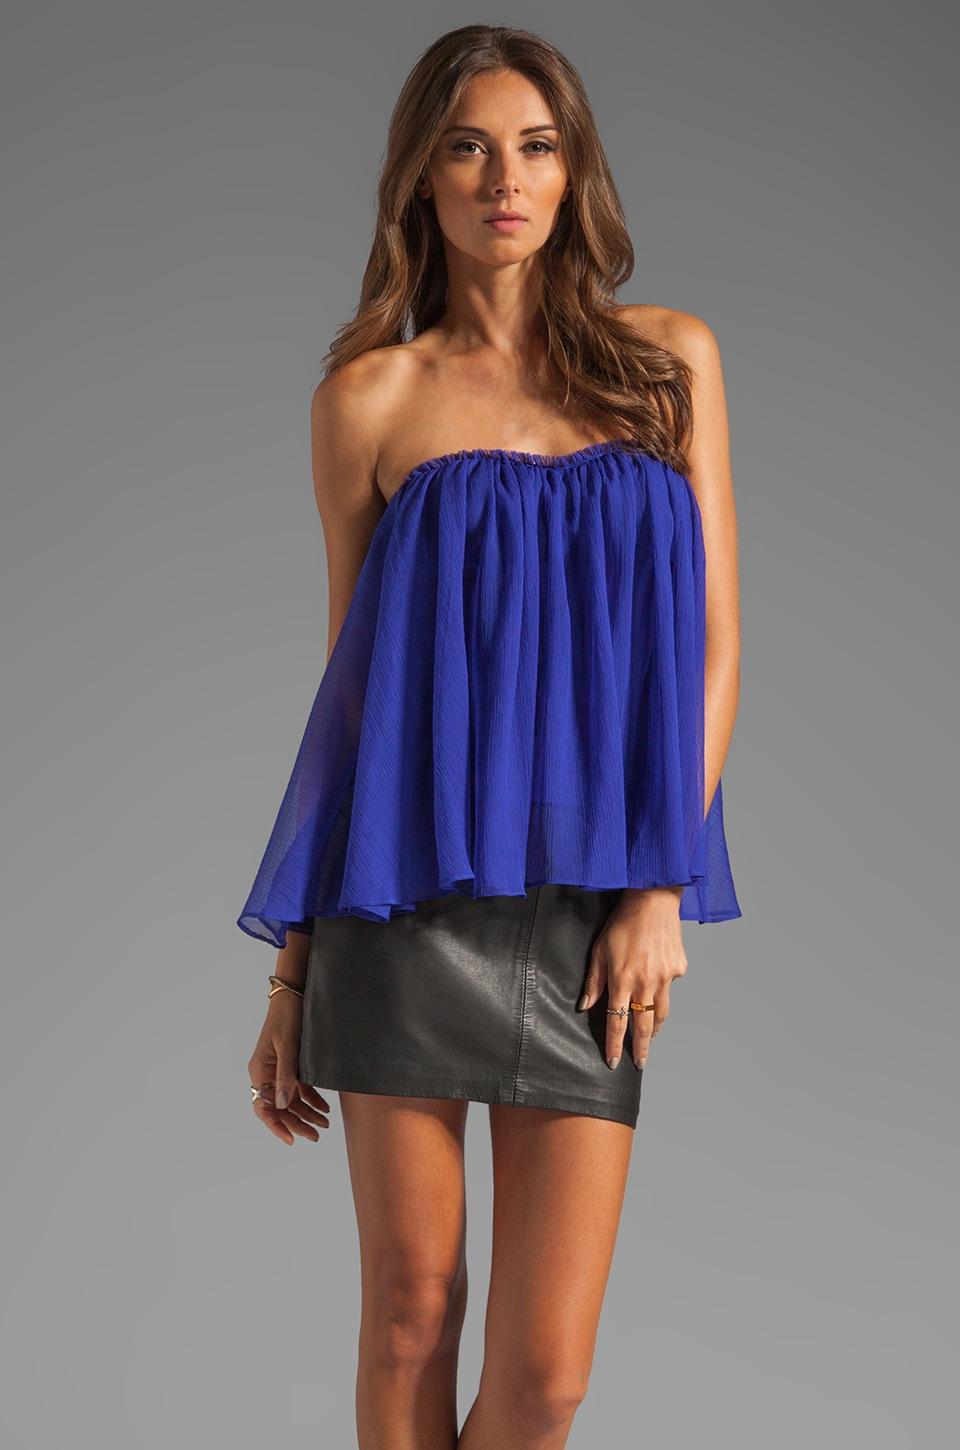 BLAQUE LABEL Strapless Ruffle Top in Blue